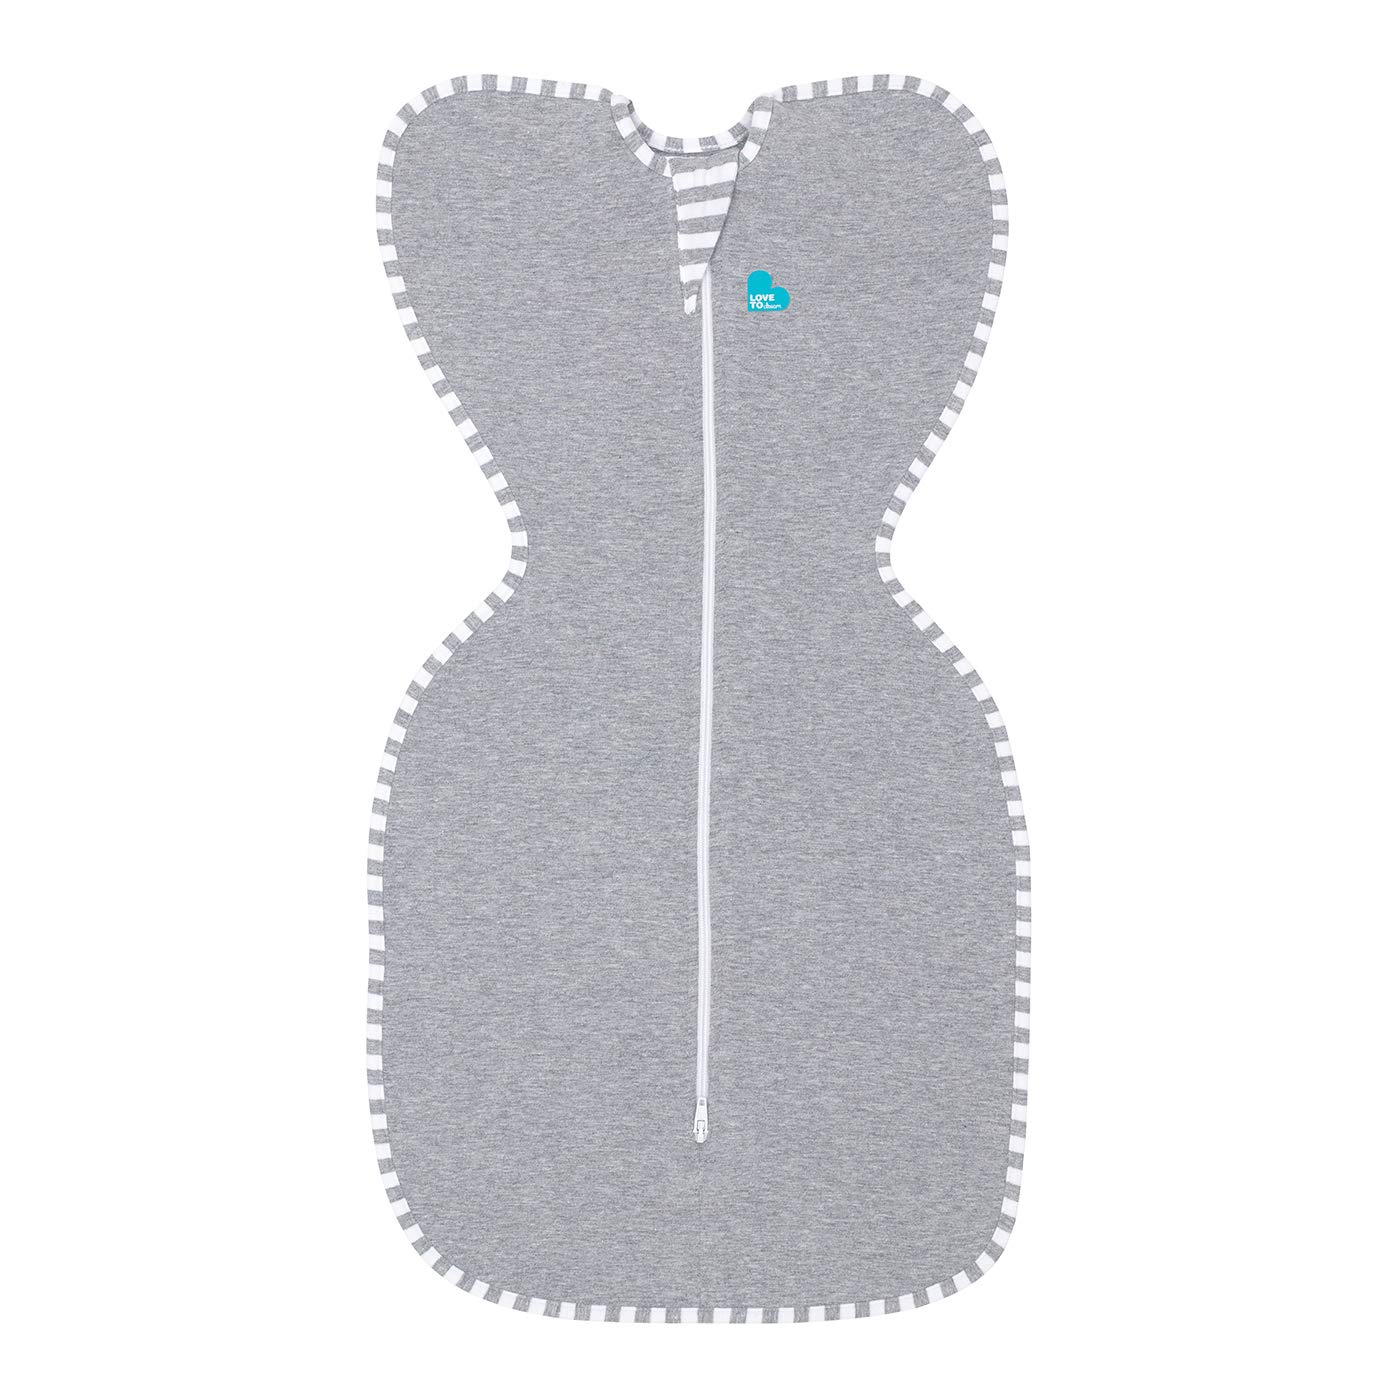 Love To Dream Swaddle UP, Gray, Small, 7-13 lbs, Dramatically Better Sleep, Allow Baby to Sleep in Their Preferred arms up Position for self-Soothing, snug fit Calms Startle Reflex by Love to Dream